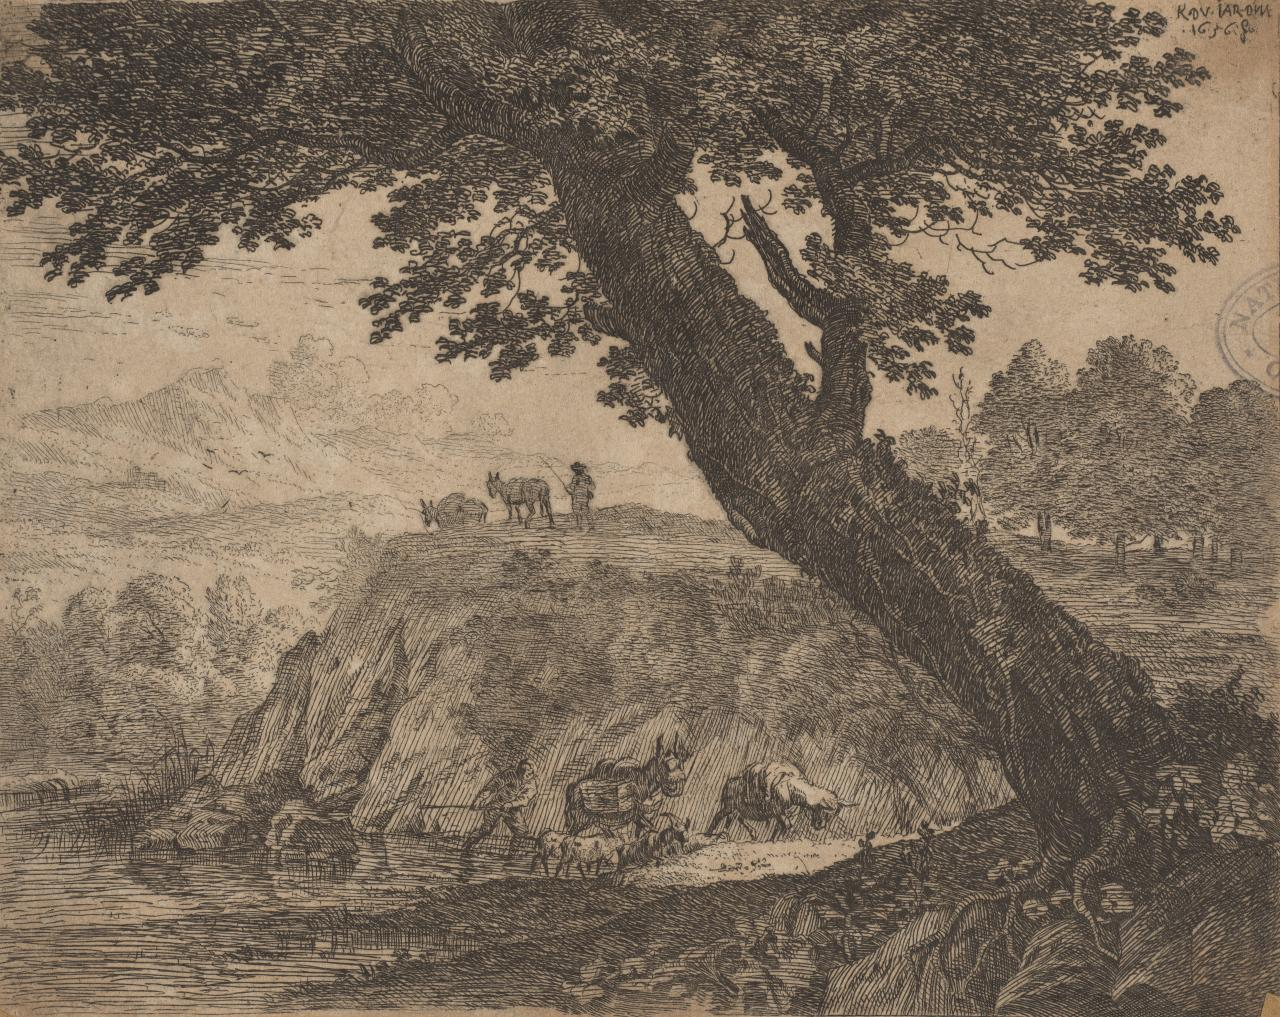 Landscape with mules and goats leaving stream